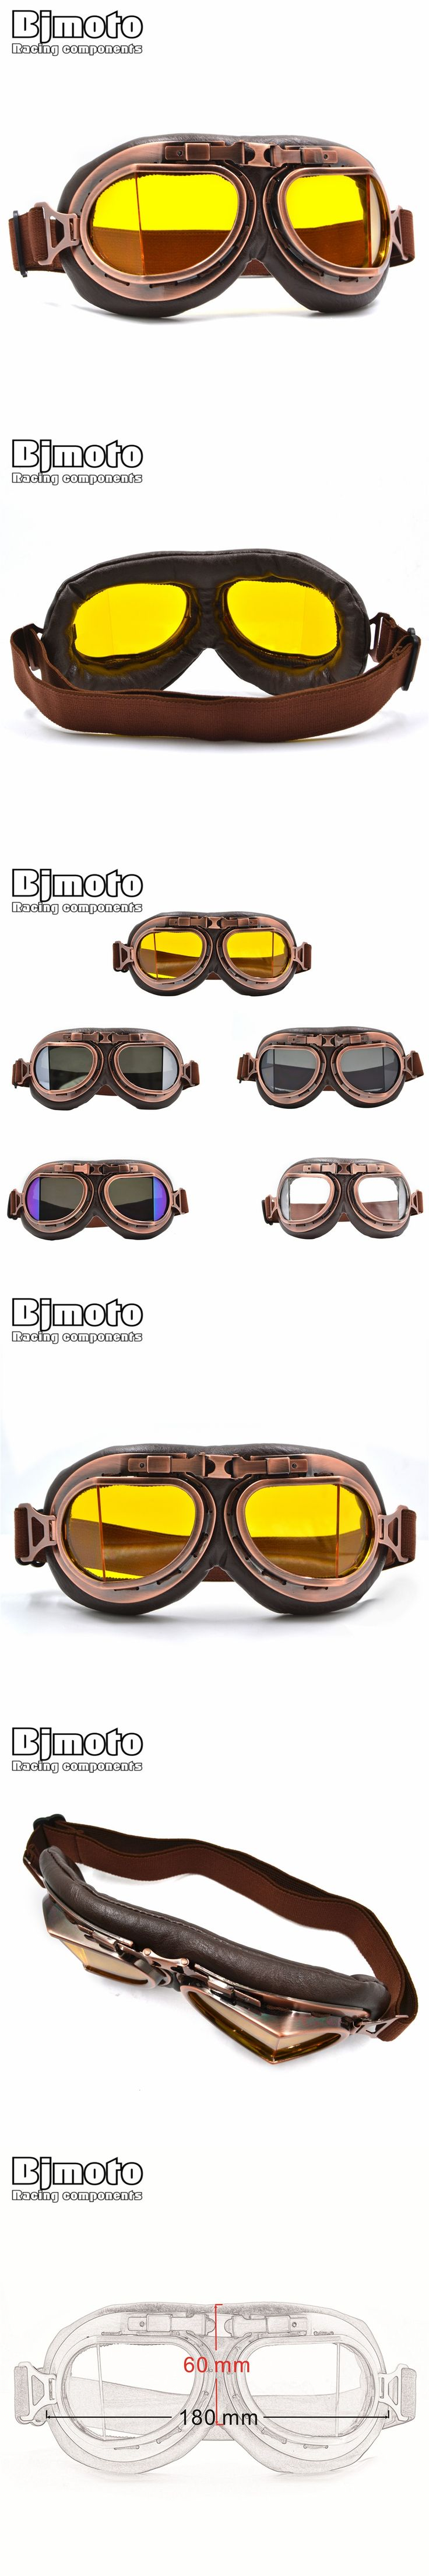 5 color lens 2016 NEW Arrival WWII Vintage for Harley style motorcycle goggles Pilot Motorbike goggles Retro Jet Helmet Eyewear